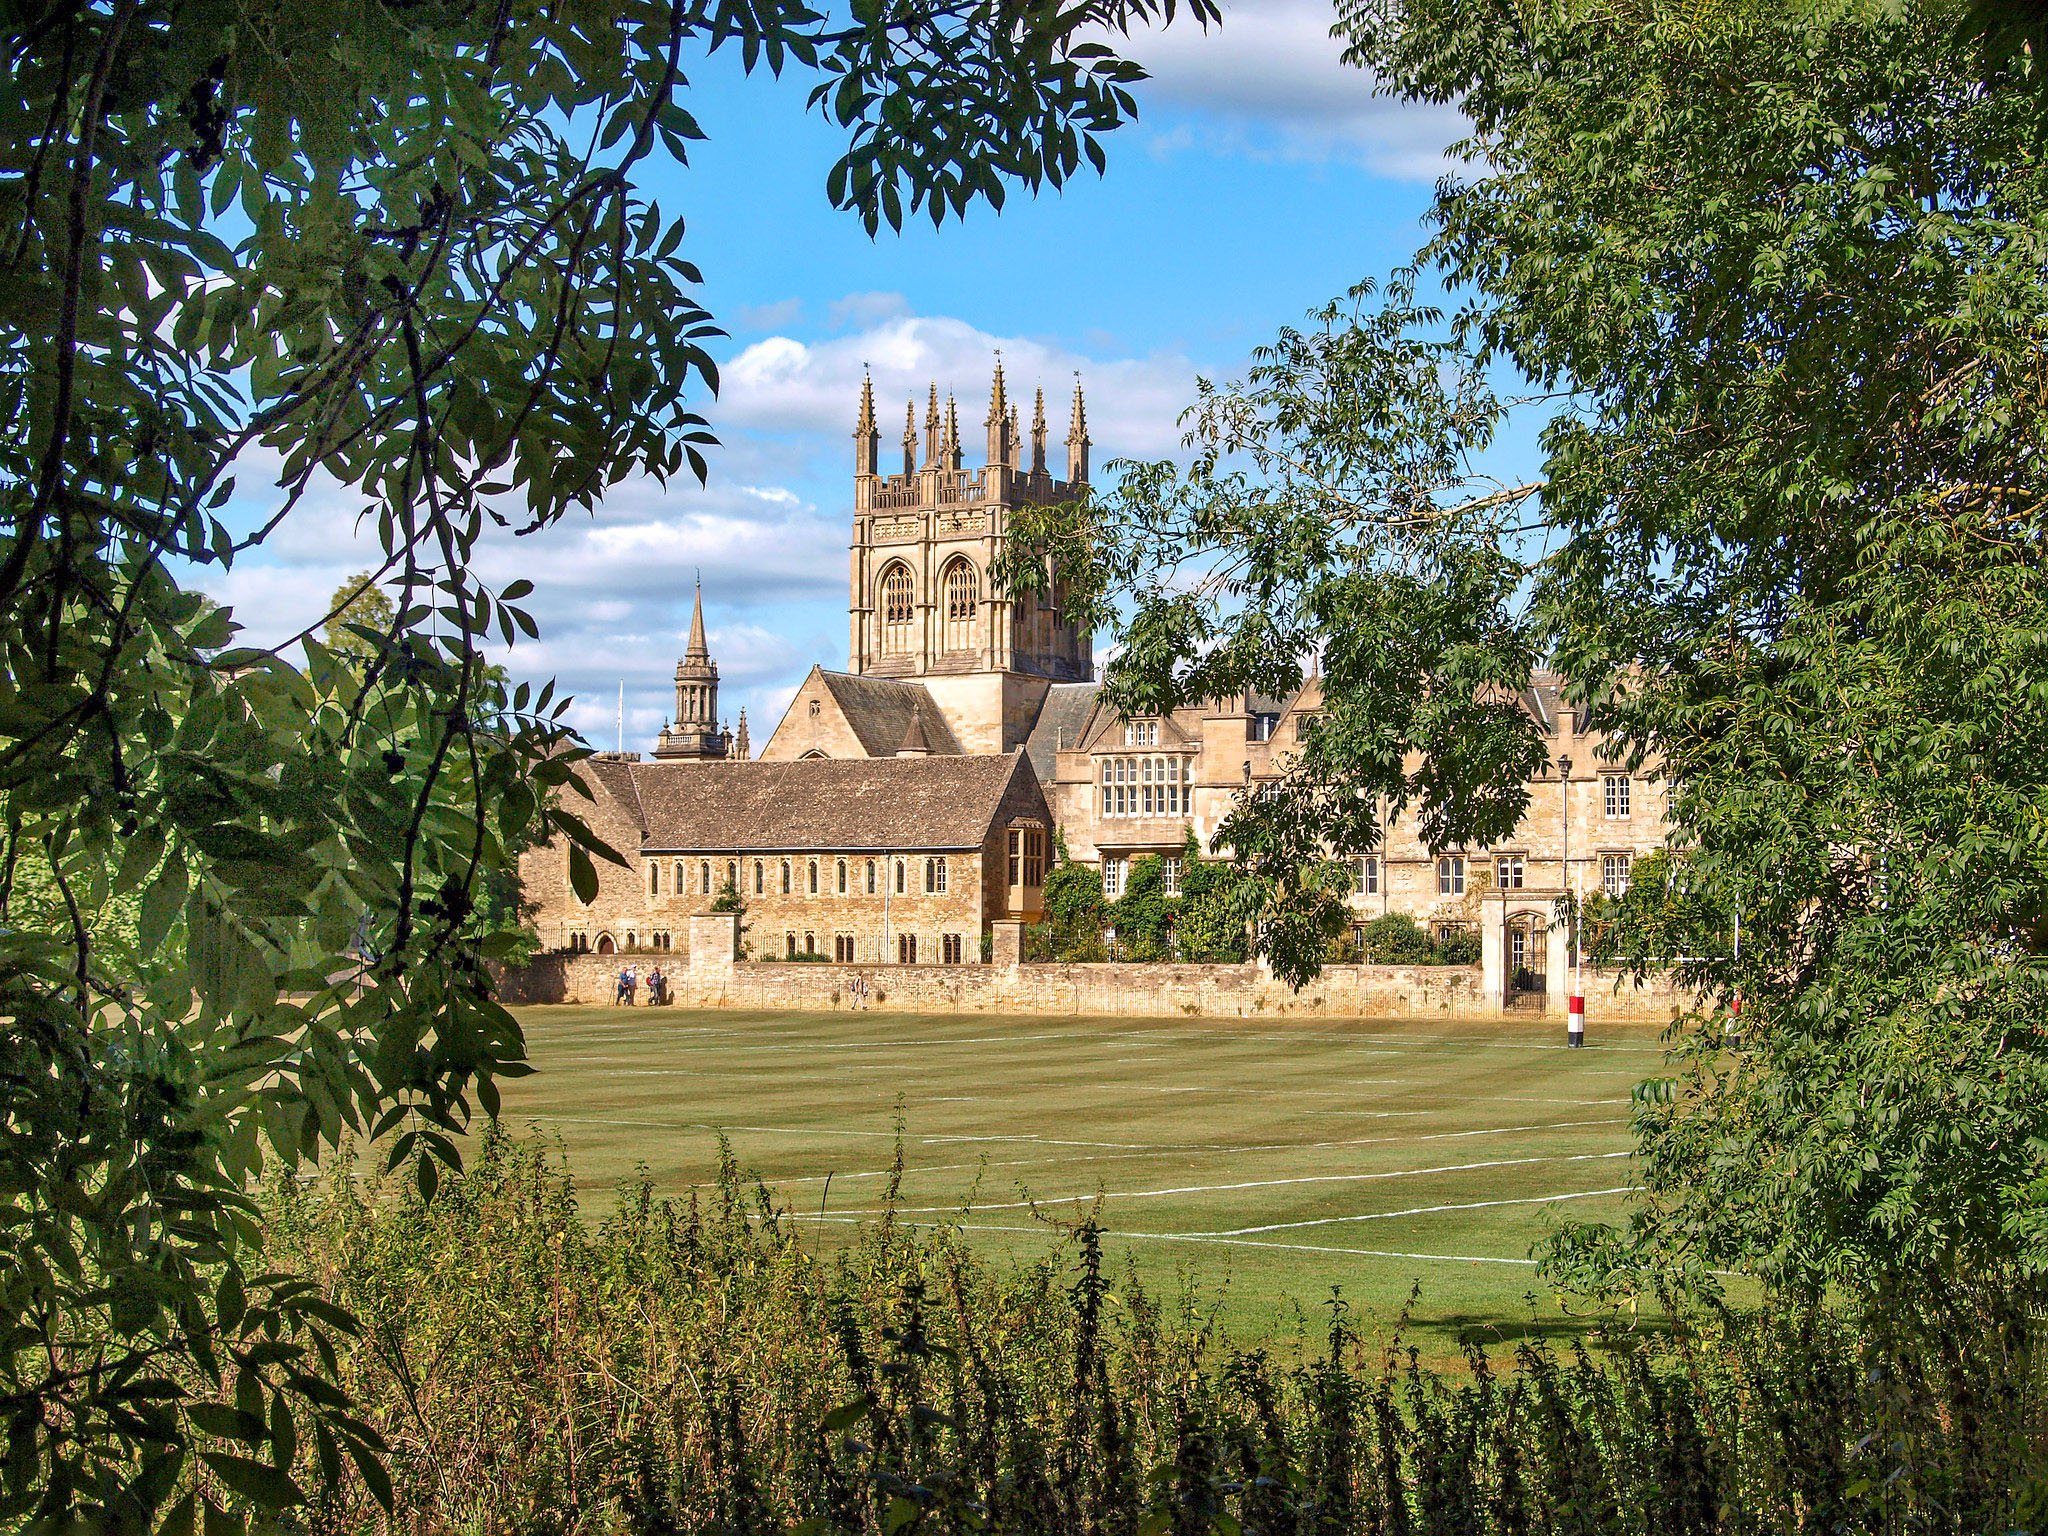 View towards Merton College from the Broadwalk, Oxford by Andrew S Brown.jpg